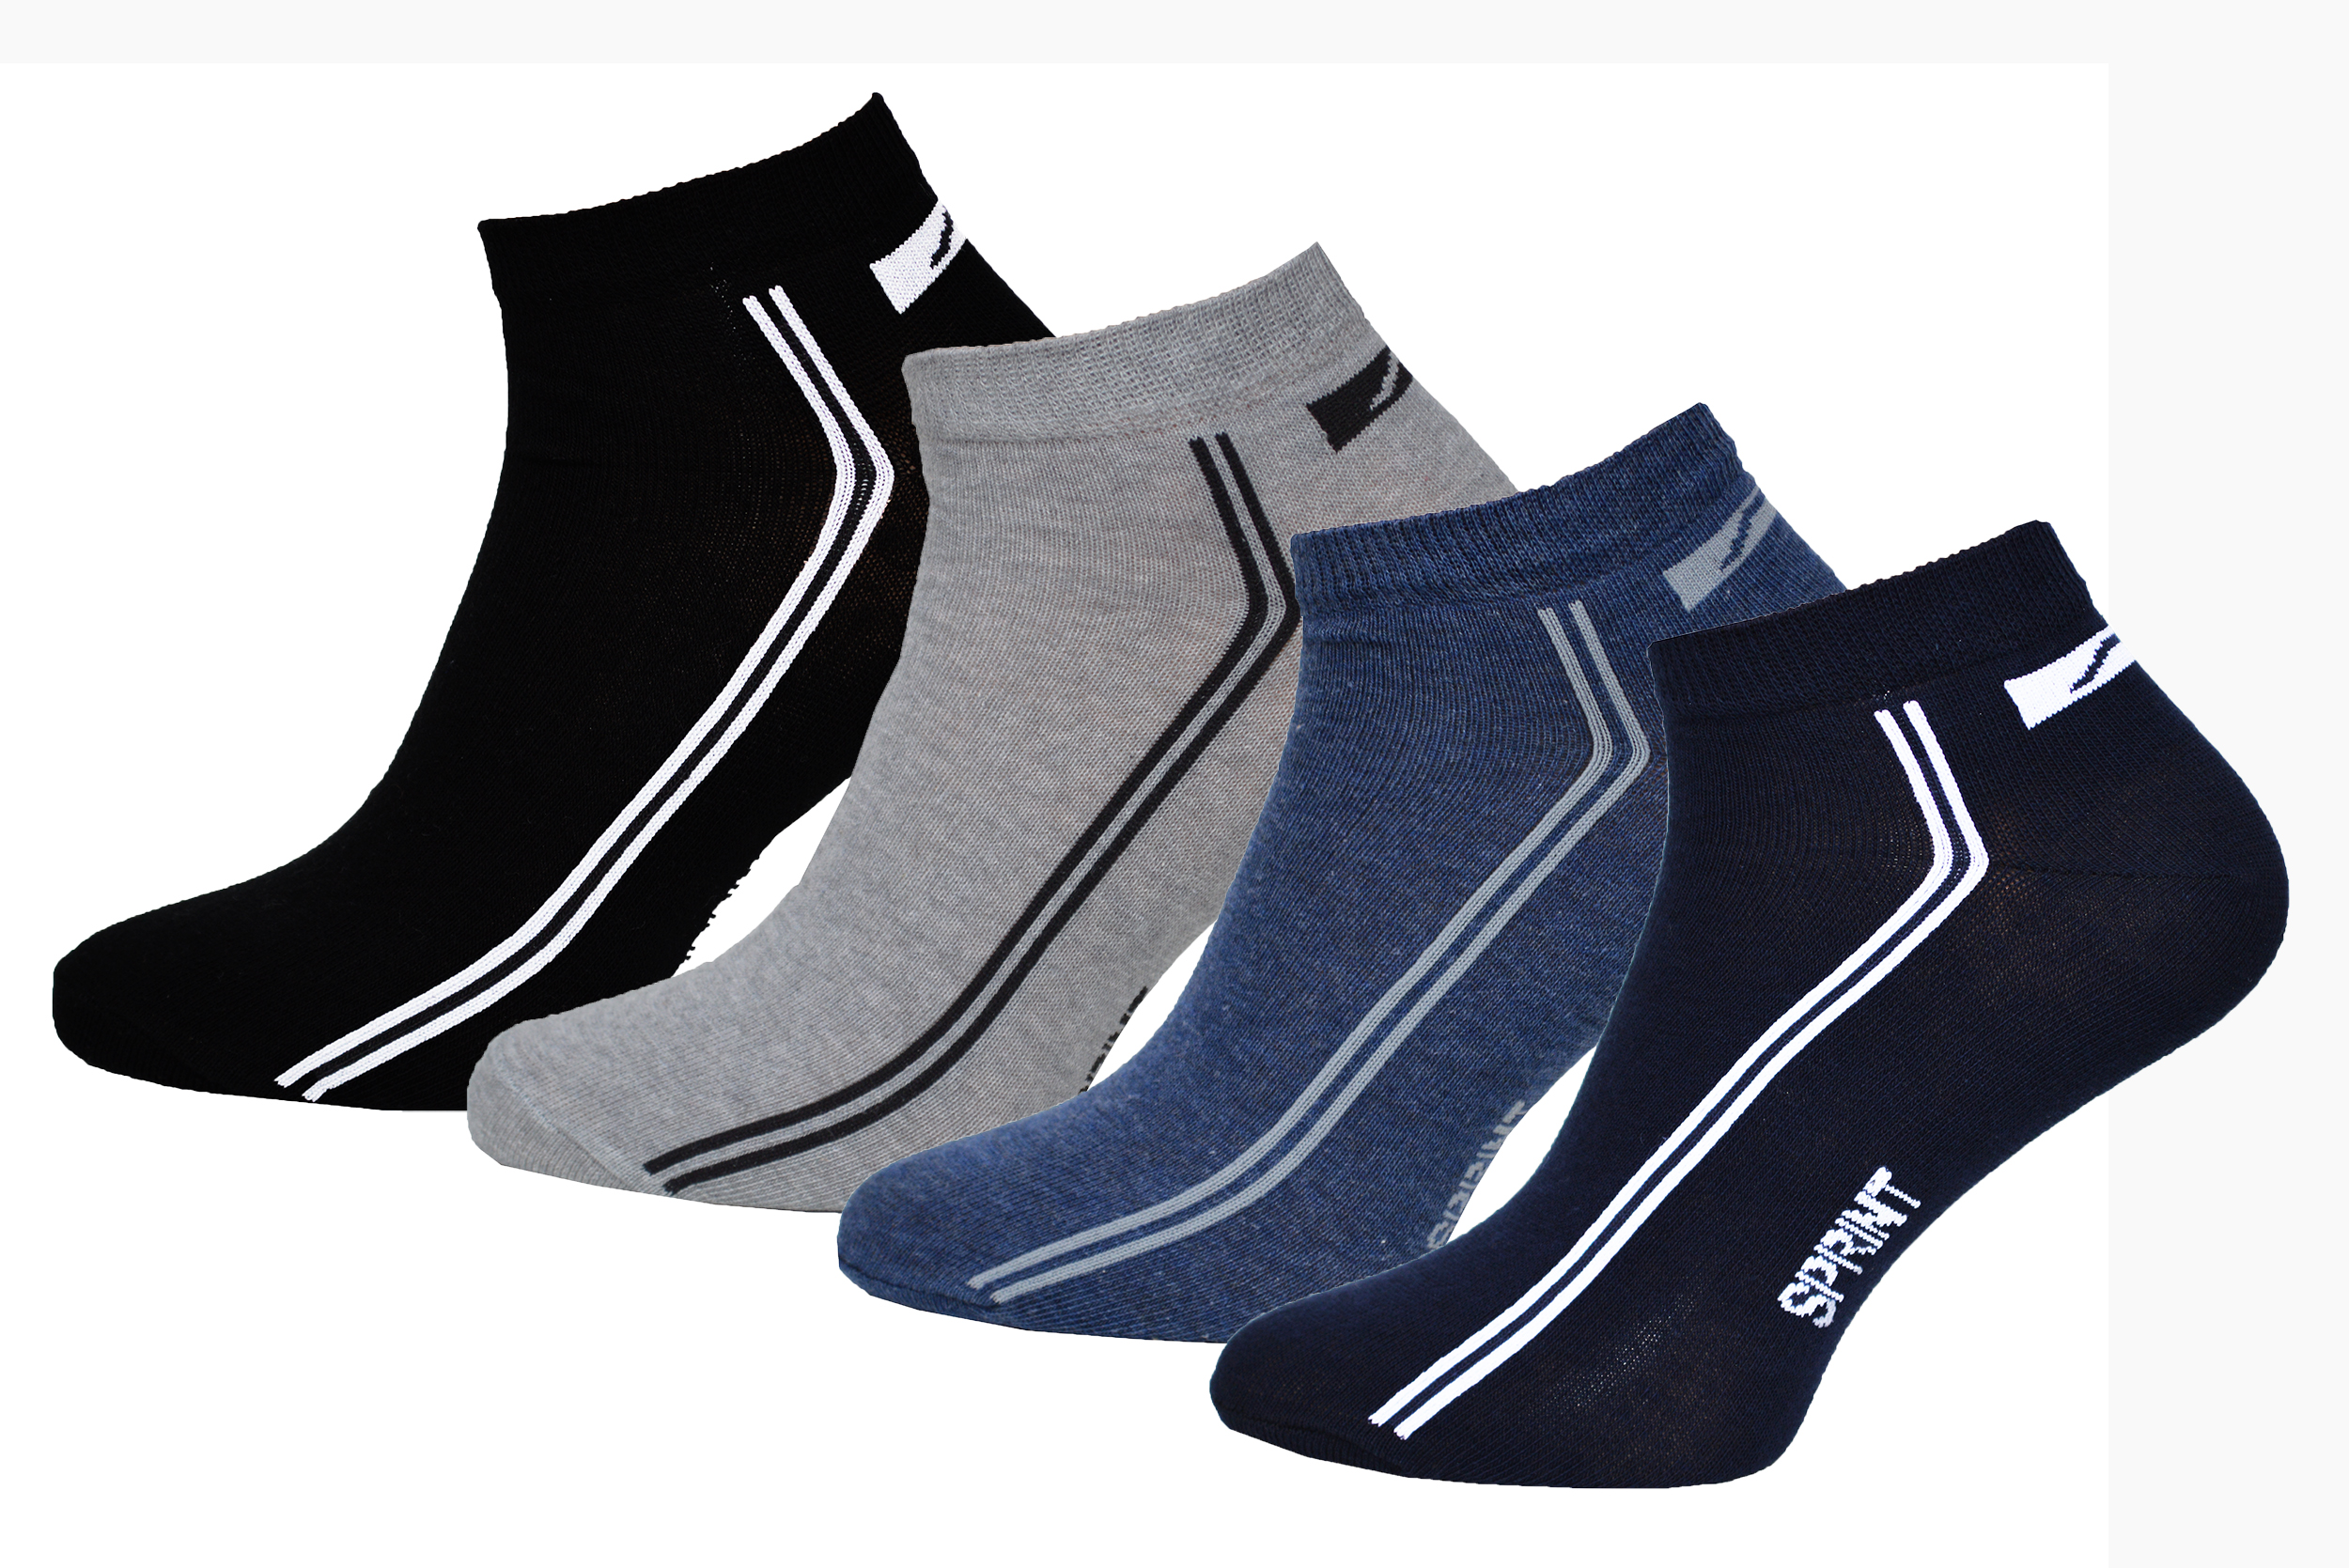 8 paar herren sneaker sprint socken mit komfortbund sommersocken sneakers ms 5072. Black Bedroom Furniture Sets. Home Design Ideas